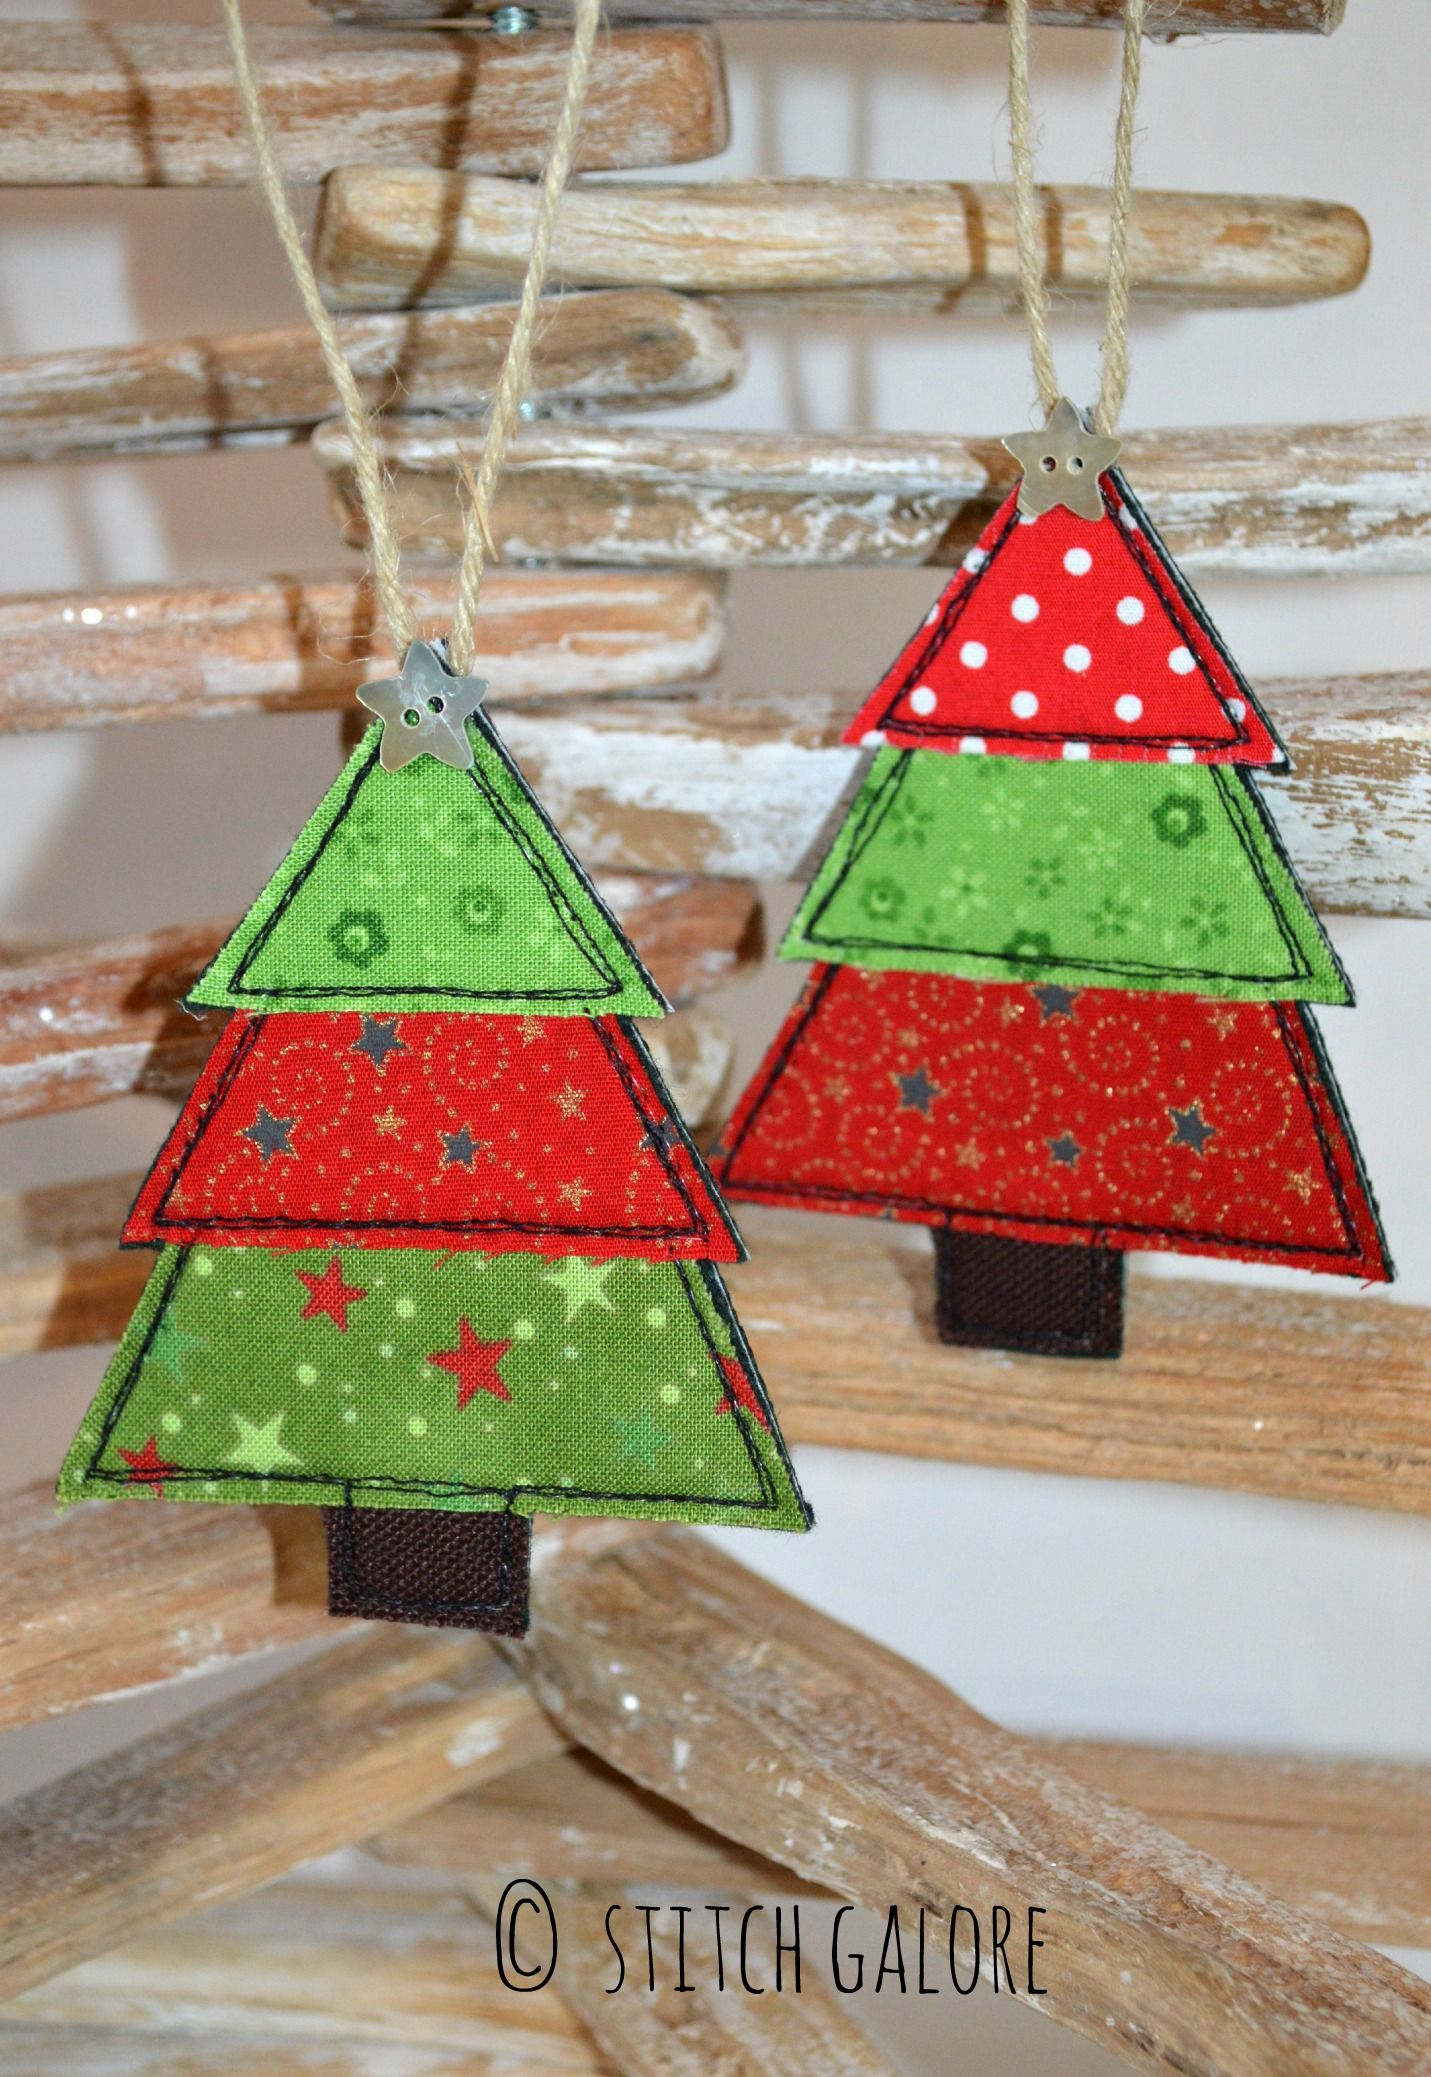 handmade christmas tree christmas decorations decorated with embroidery and applique by stitch galore wwwstitchgalorecom - Christmas Decorations Pinterest Handmade